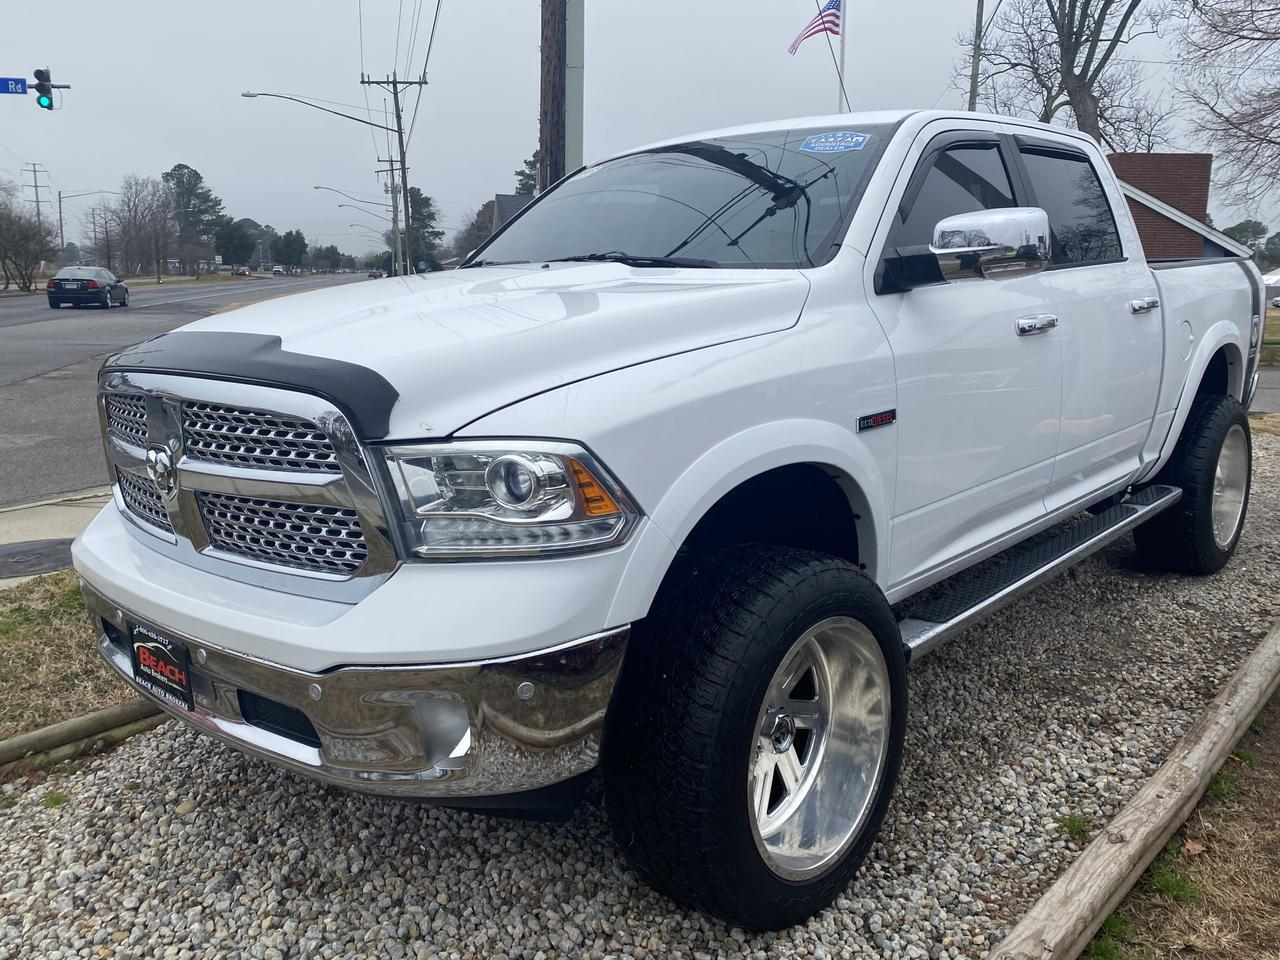 2014 DODGE RAM 1500 LARAMIE CREW CAB, WARRANTY, ECO DIESEL,LIFTED,LEATHER, NAV, HEATED/COOLED SEATS, CLEAN CARFAX! Norfolk VA